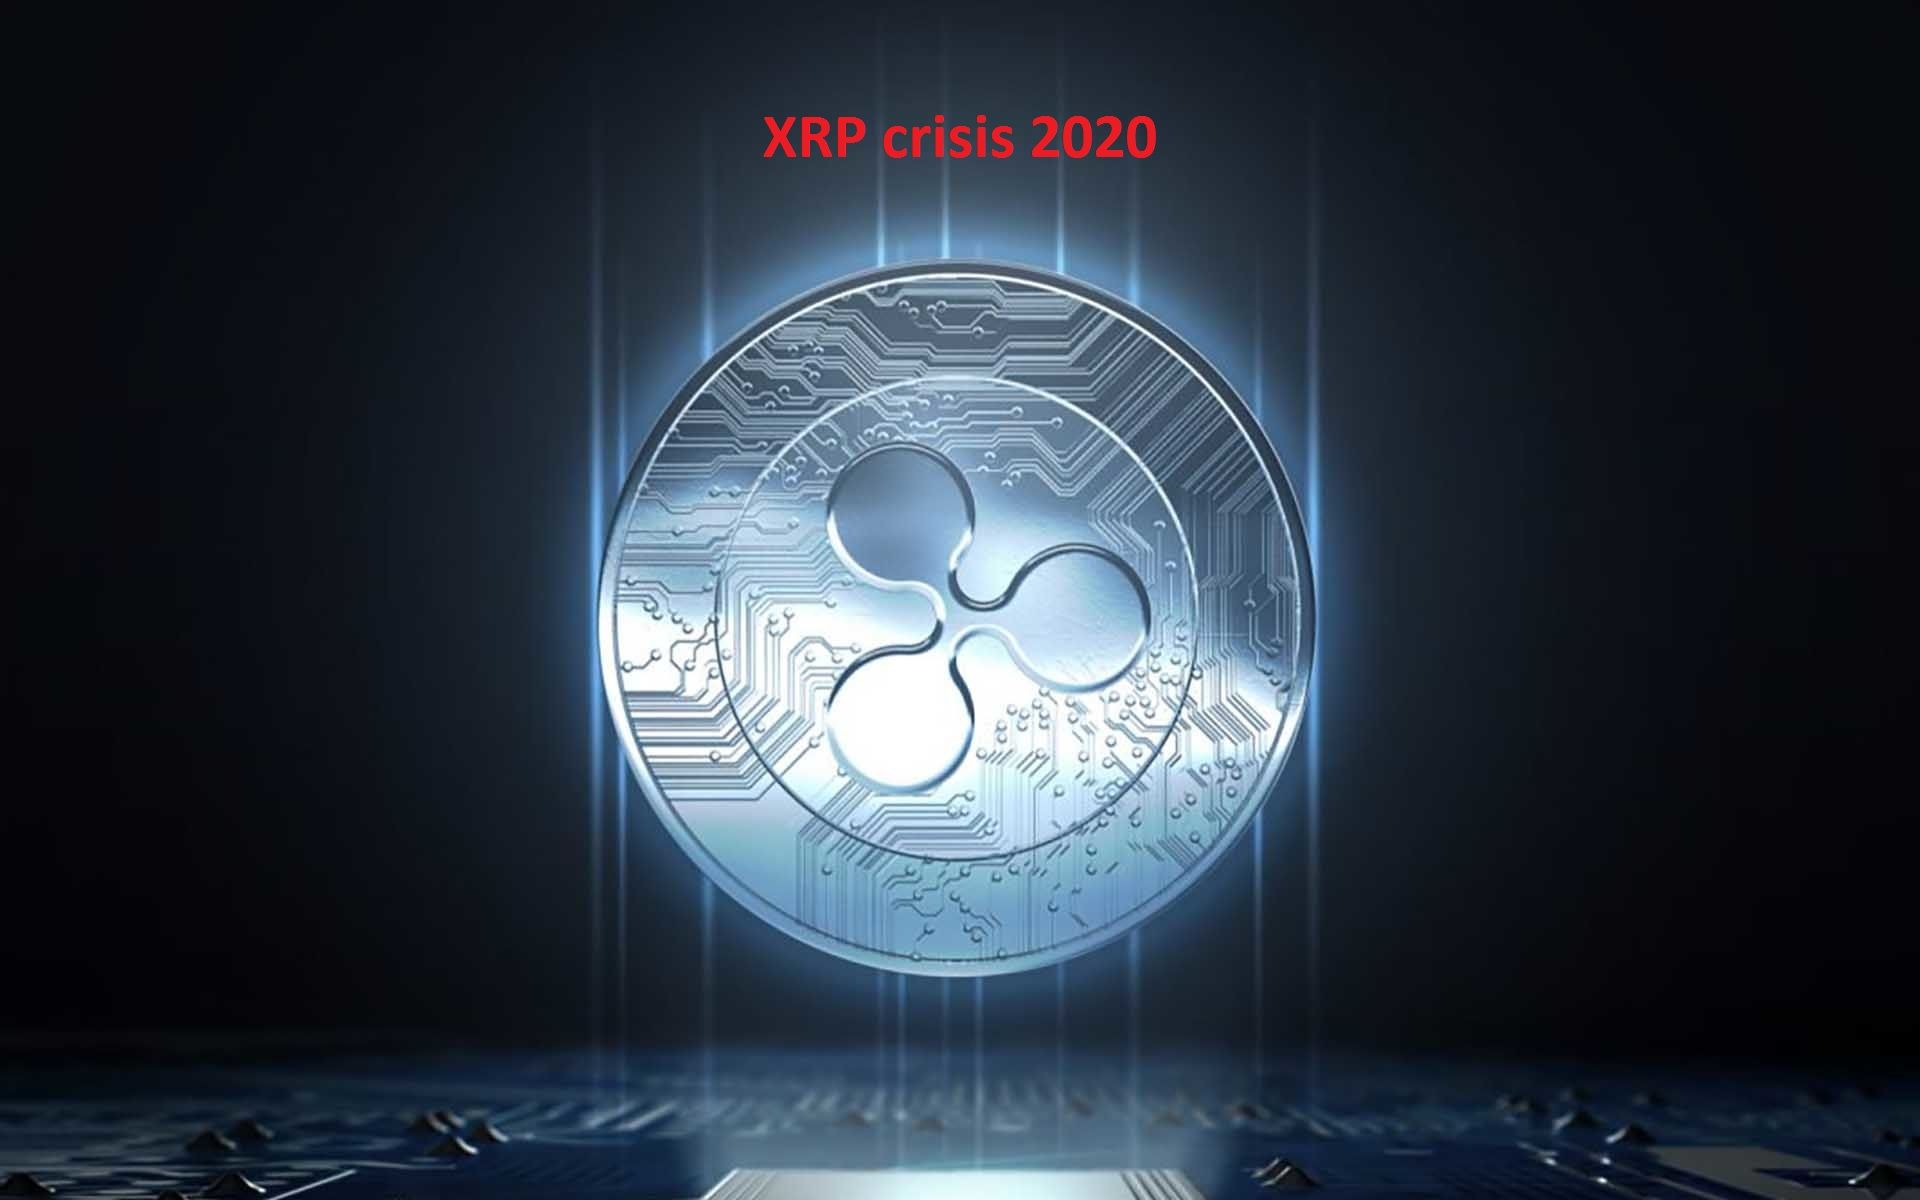 /the-xrp-crisis-is-a-reminder-of-the-bitconnect-days-fn5634c3 feature image